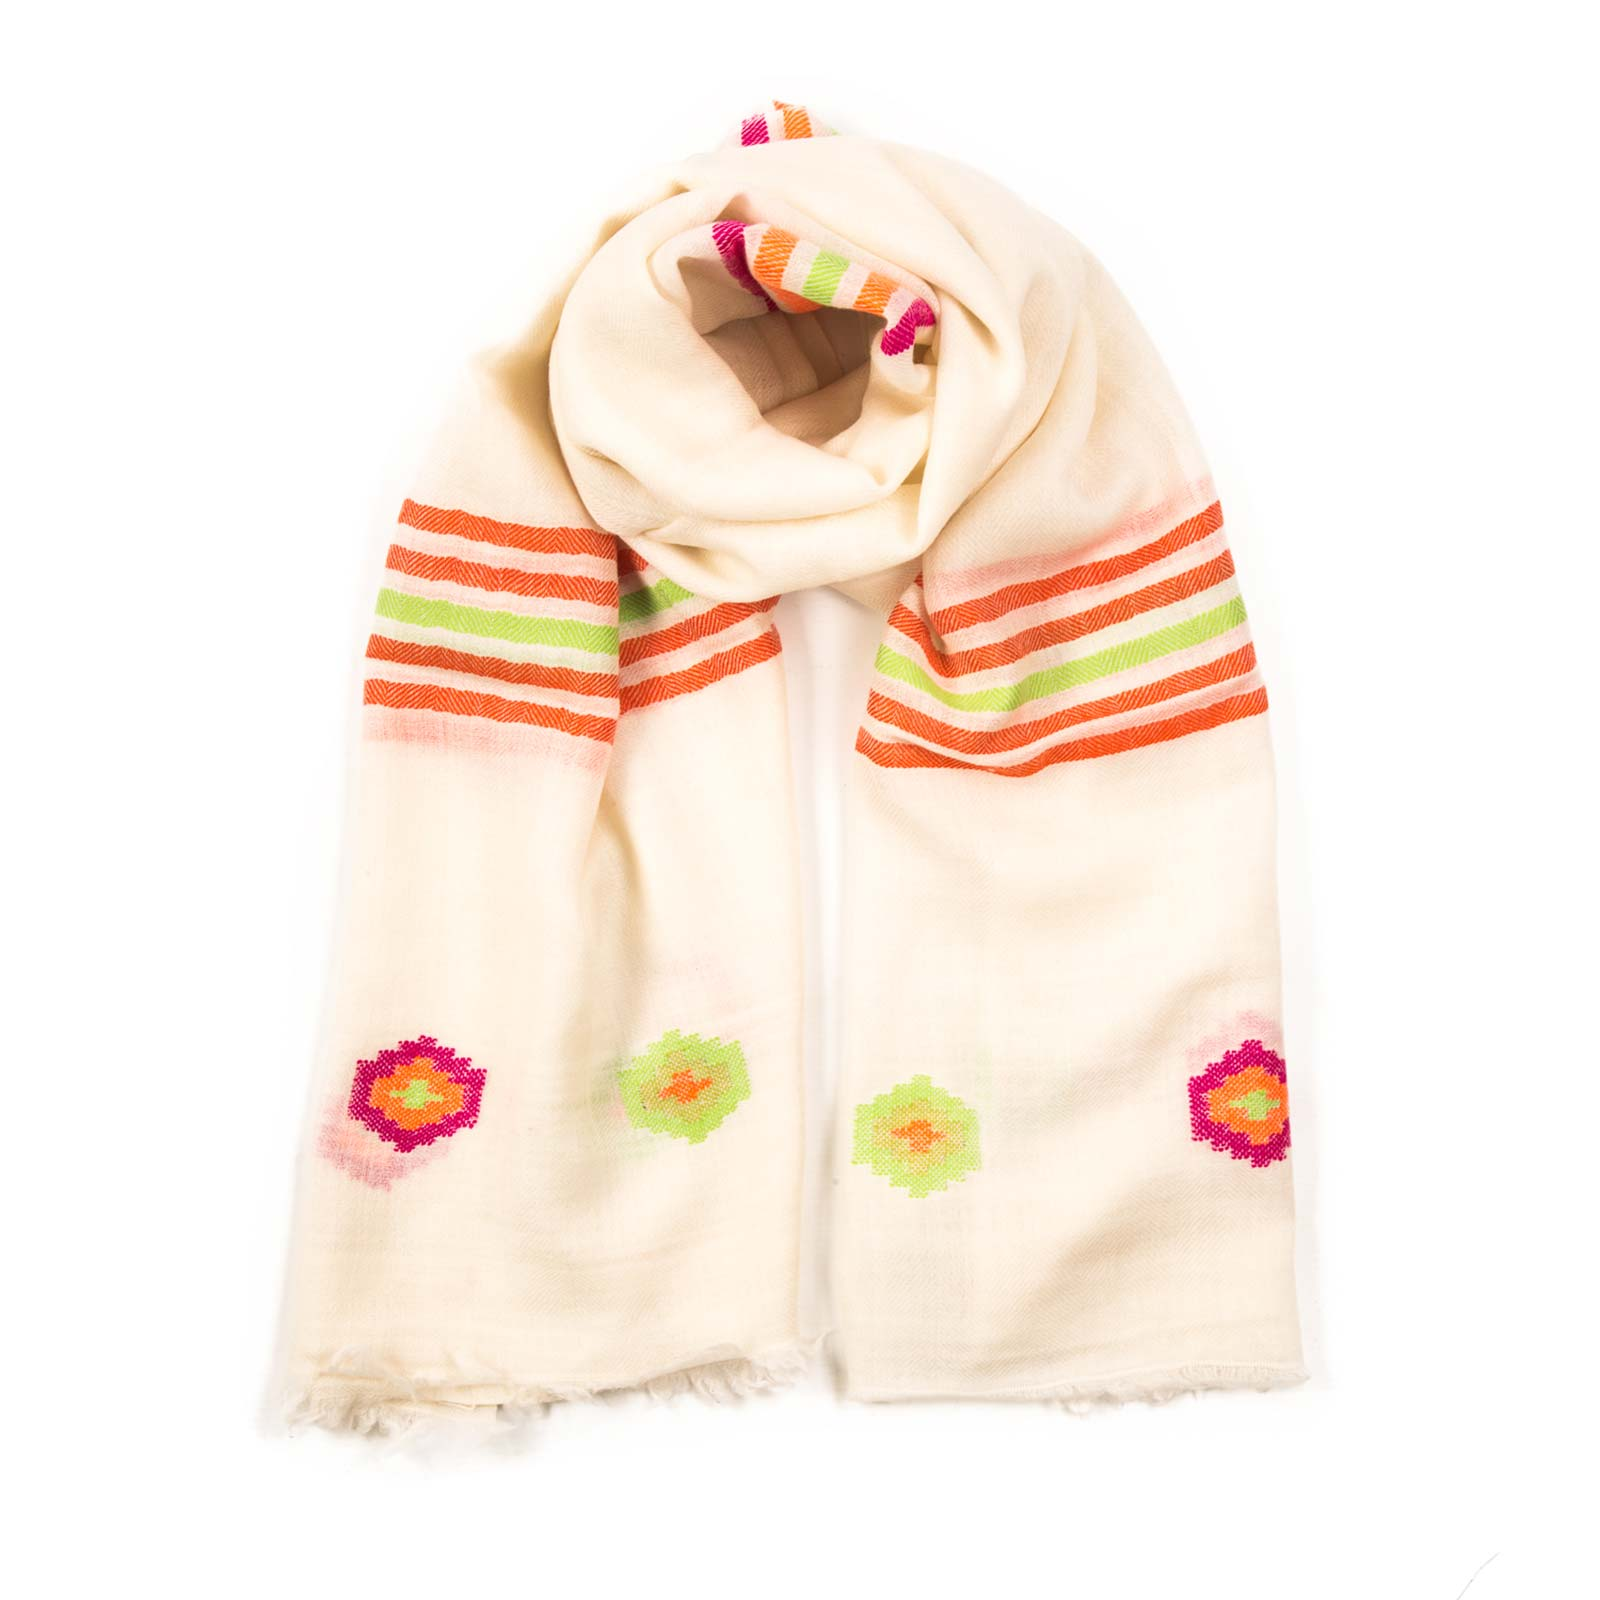 Saturn rainbow shawl bursts with a rainbow of color set on a white background. Made up of luxurious Pashmina, the shawl is purely hand woven. From Beshlie Mckelvie